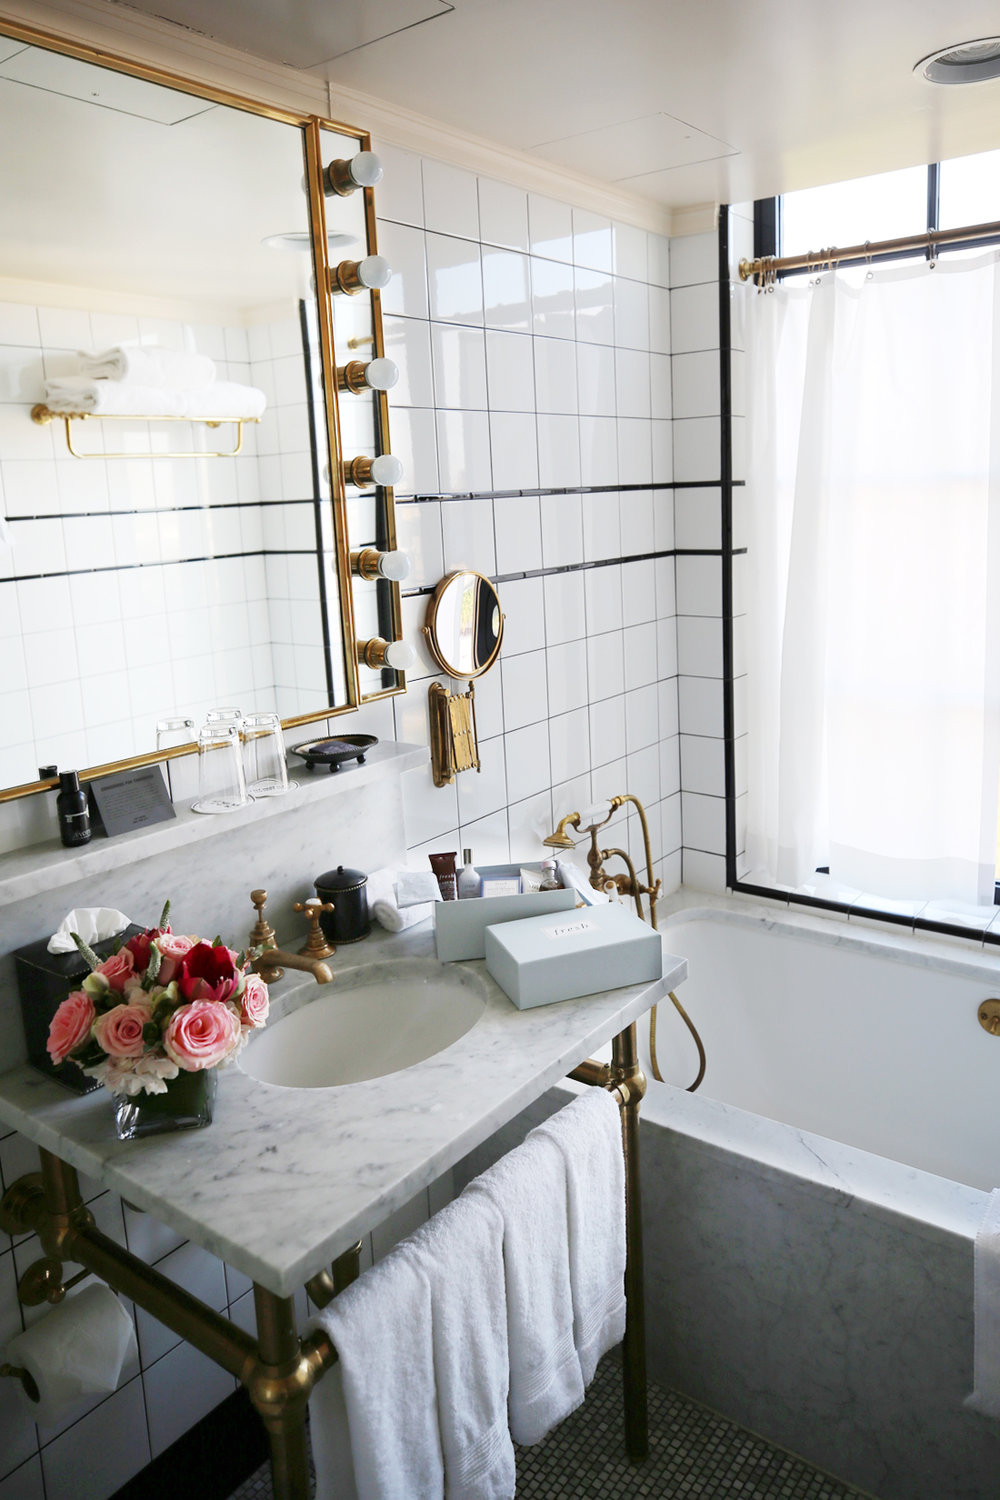 Bathroom at the Ludlow Hotel NY with Fresh Beauty, photos by Nathalie Martin, woahstyle.com_0731.jpg